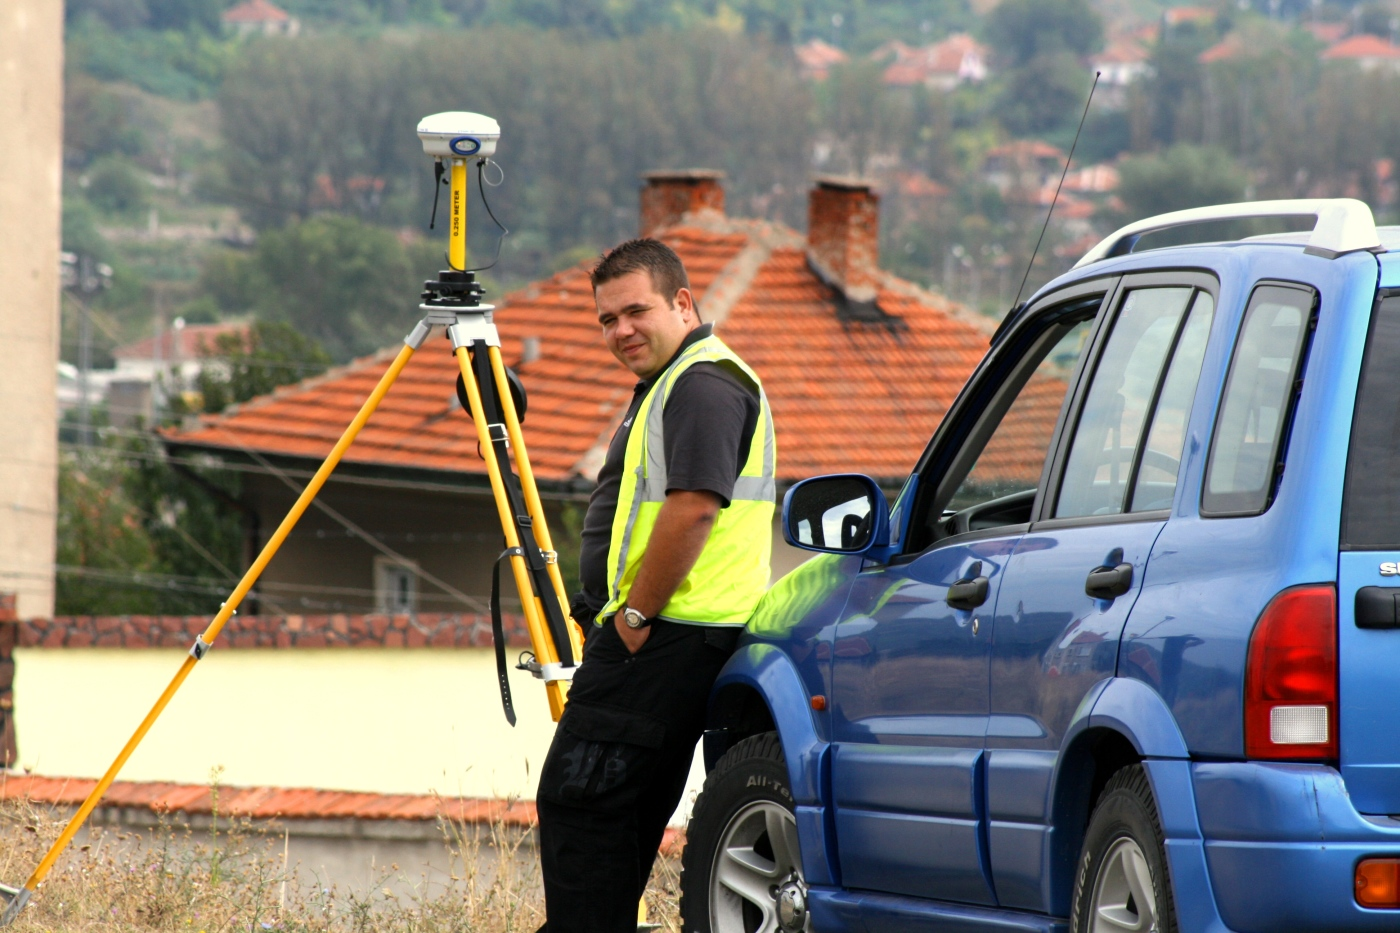 GPS measurements in Lom town, Bulgaria